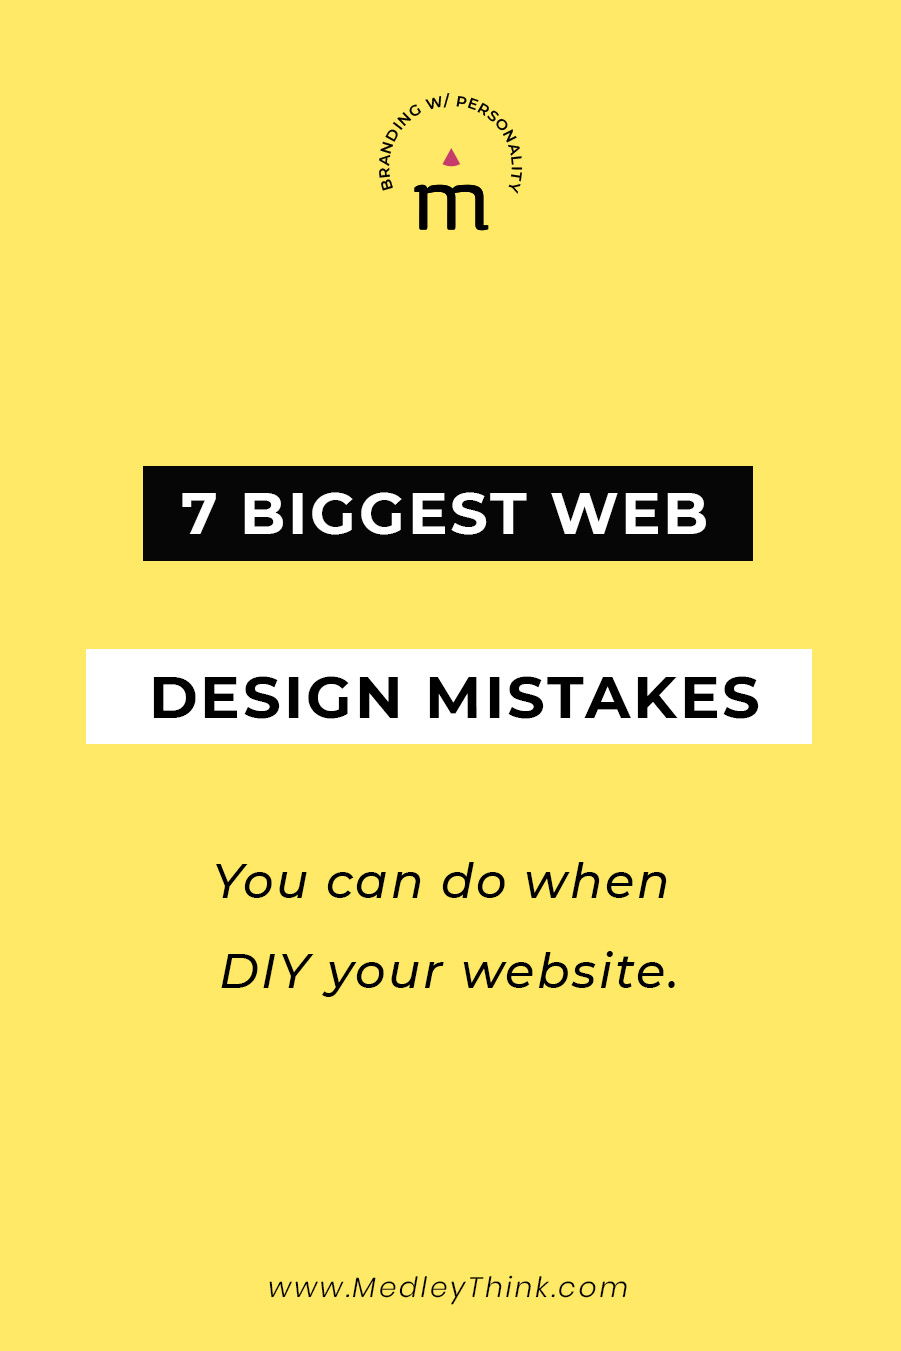 Imagine yourself landing on a website that you never heard of. What are the biggest deal breakers that will make you stay or leave and never come back? #website #webdesign #webdevelopemnt #webtips